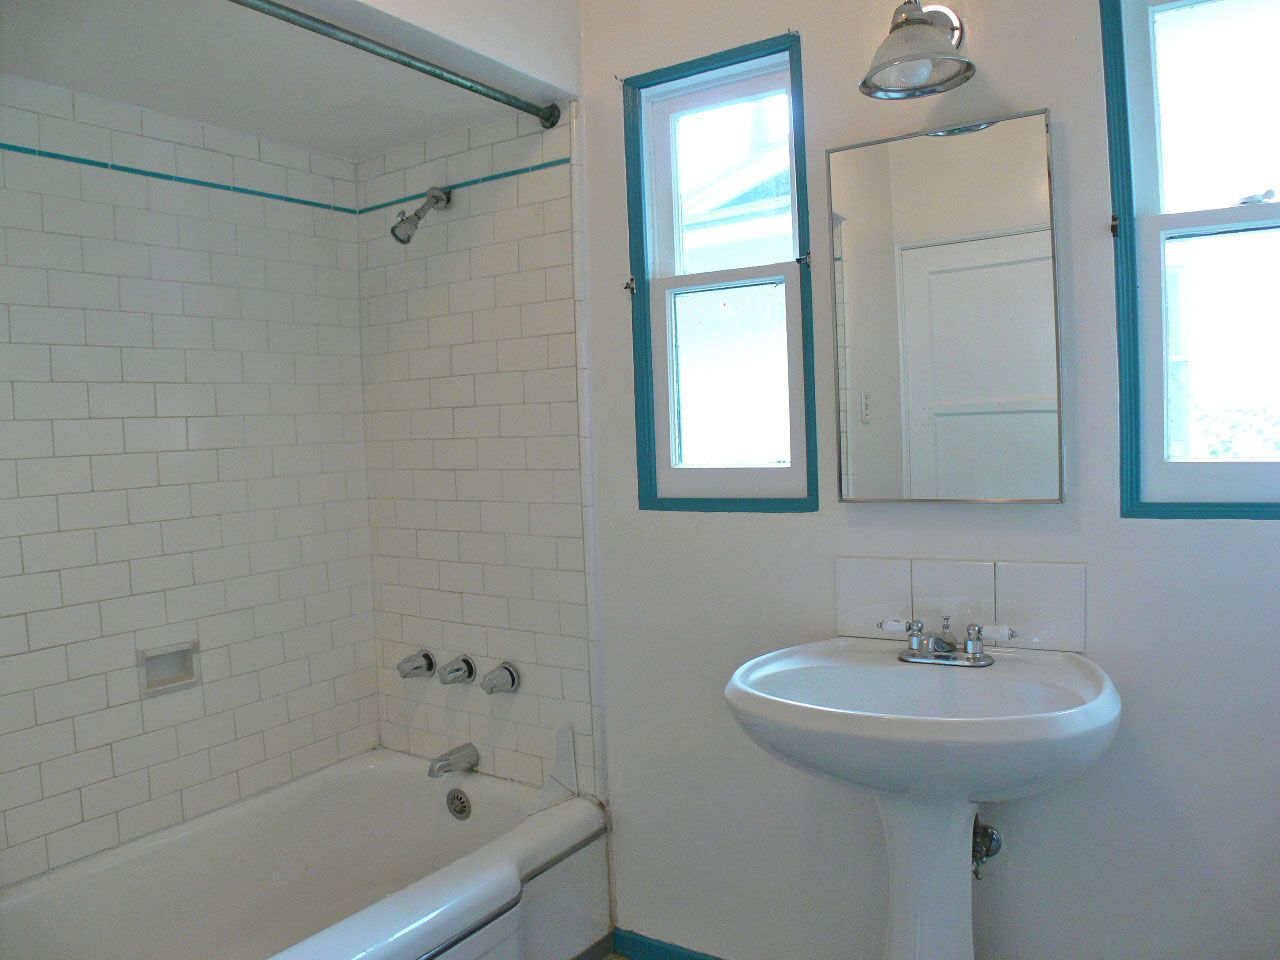 White Subway Tile Bathroom Design Bafroomssubway